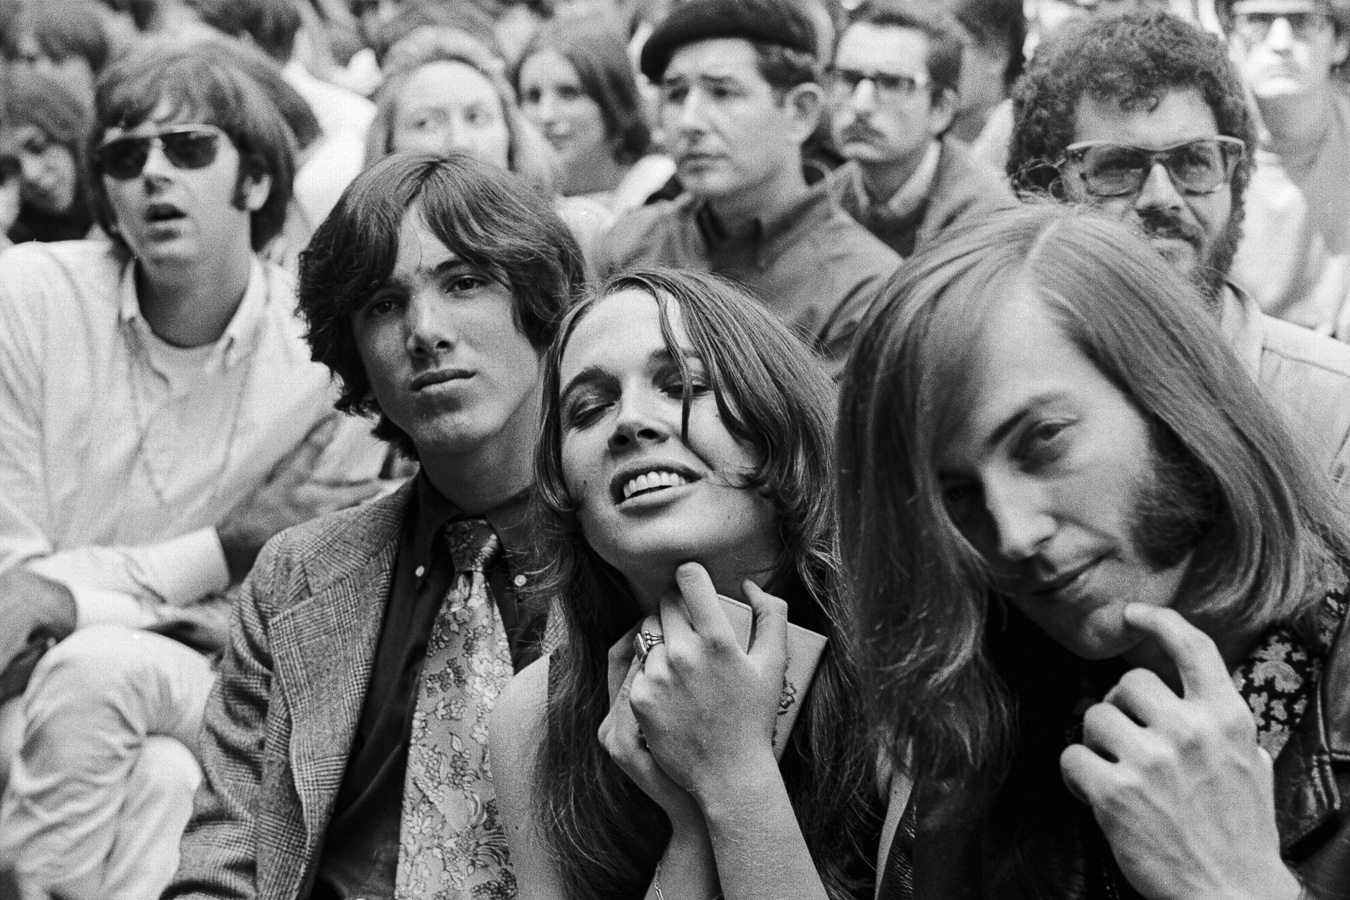 A young woman's joy in the music transcends the emotions of those around her, including her friend Sam Andrew (right) of Big Brother and the Holding Company.